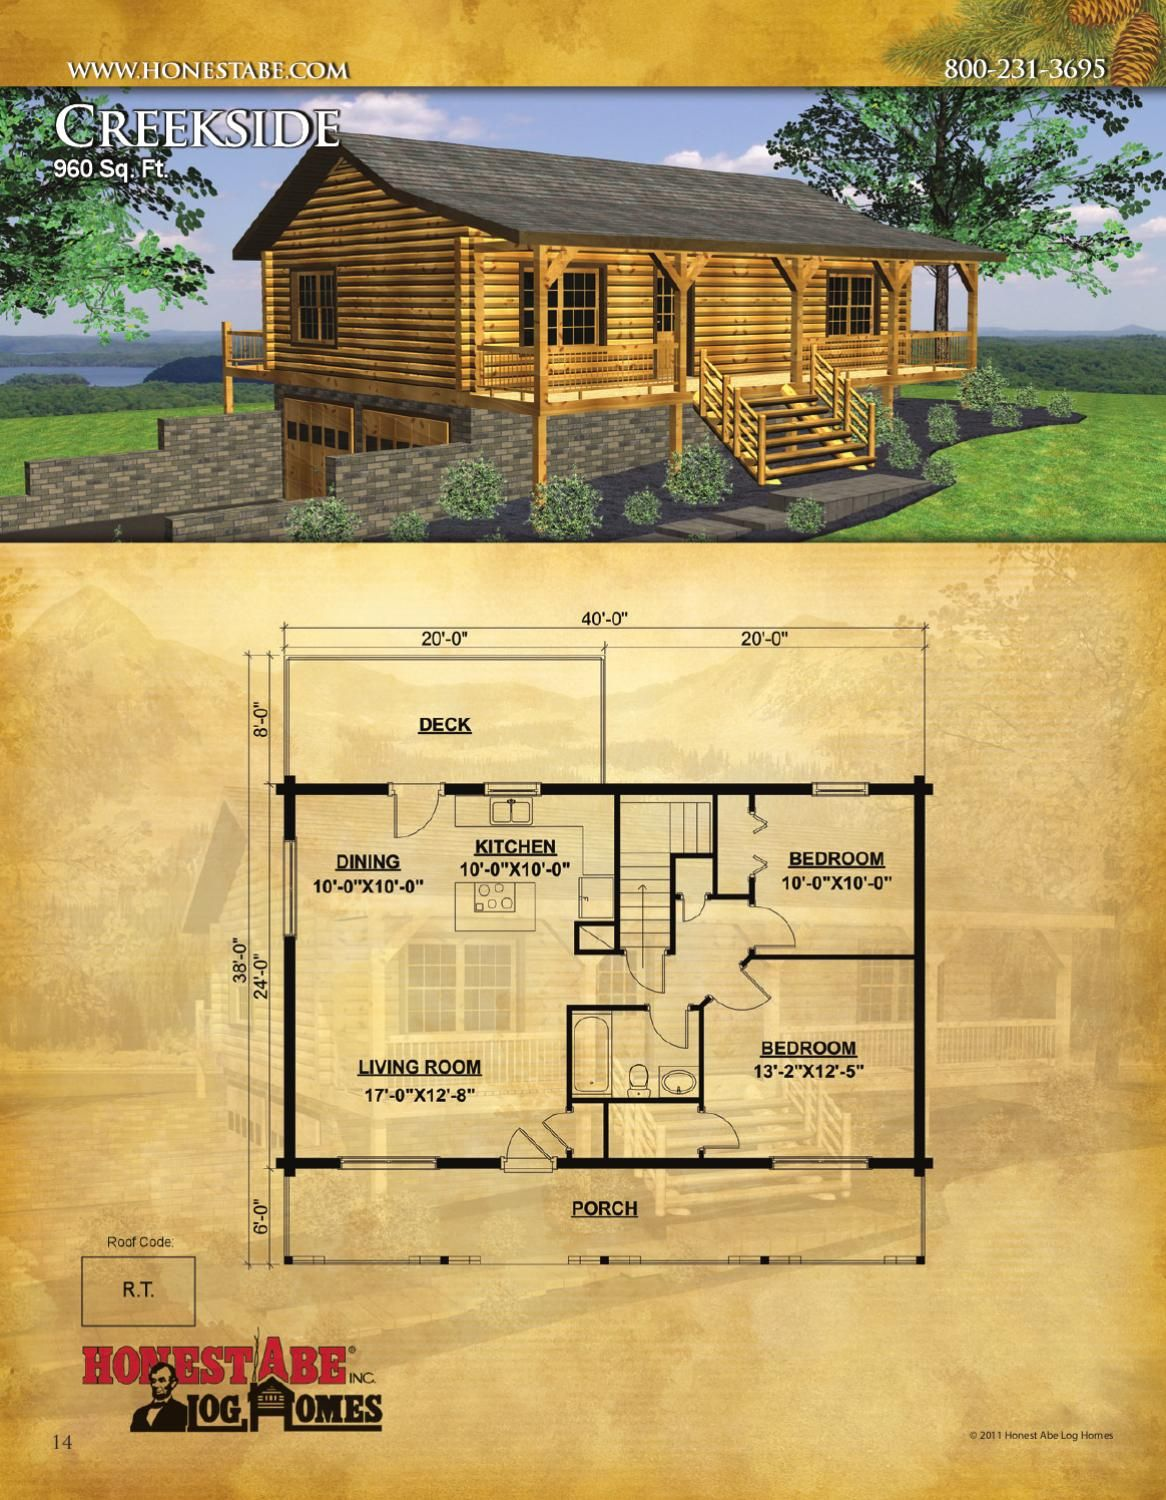 Honest Abe Log Homes Floor Plan Catalog Log Home Designs Log Home Floor Plans Log Cabin Floor Plans